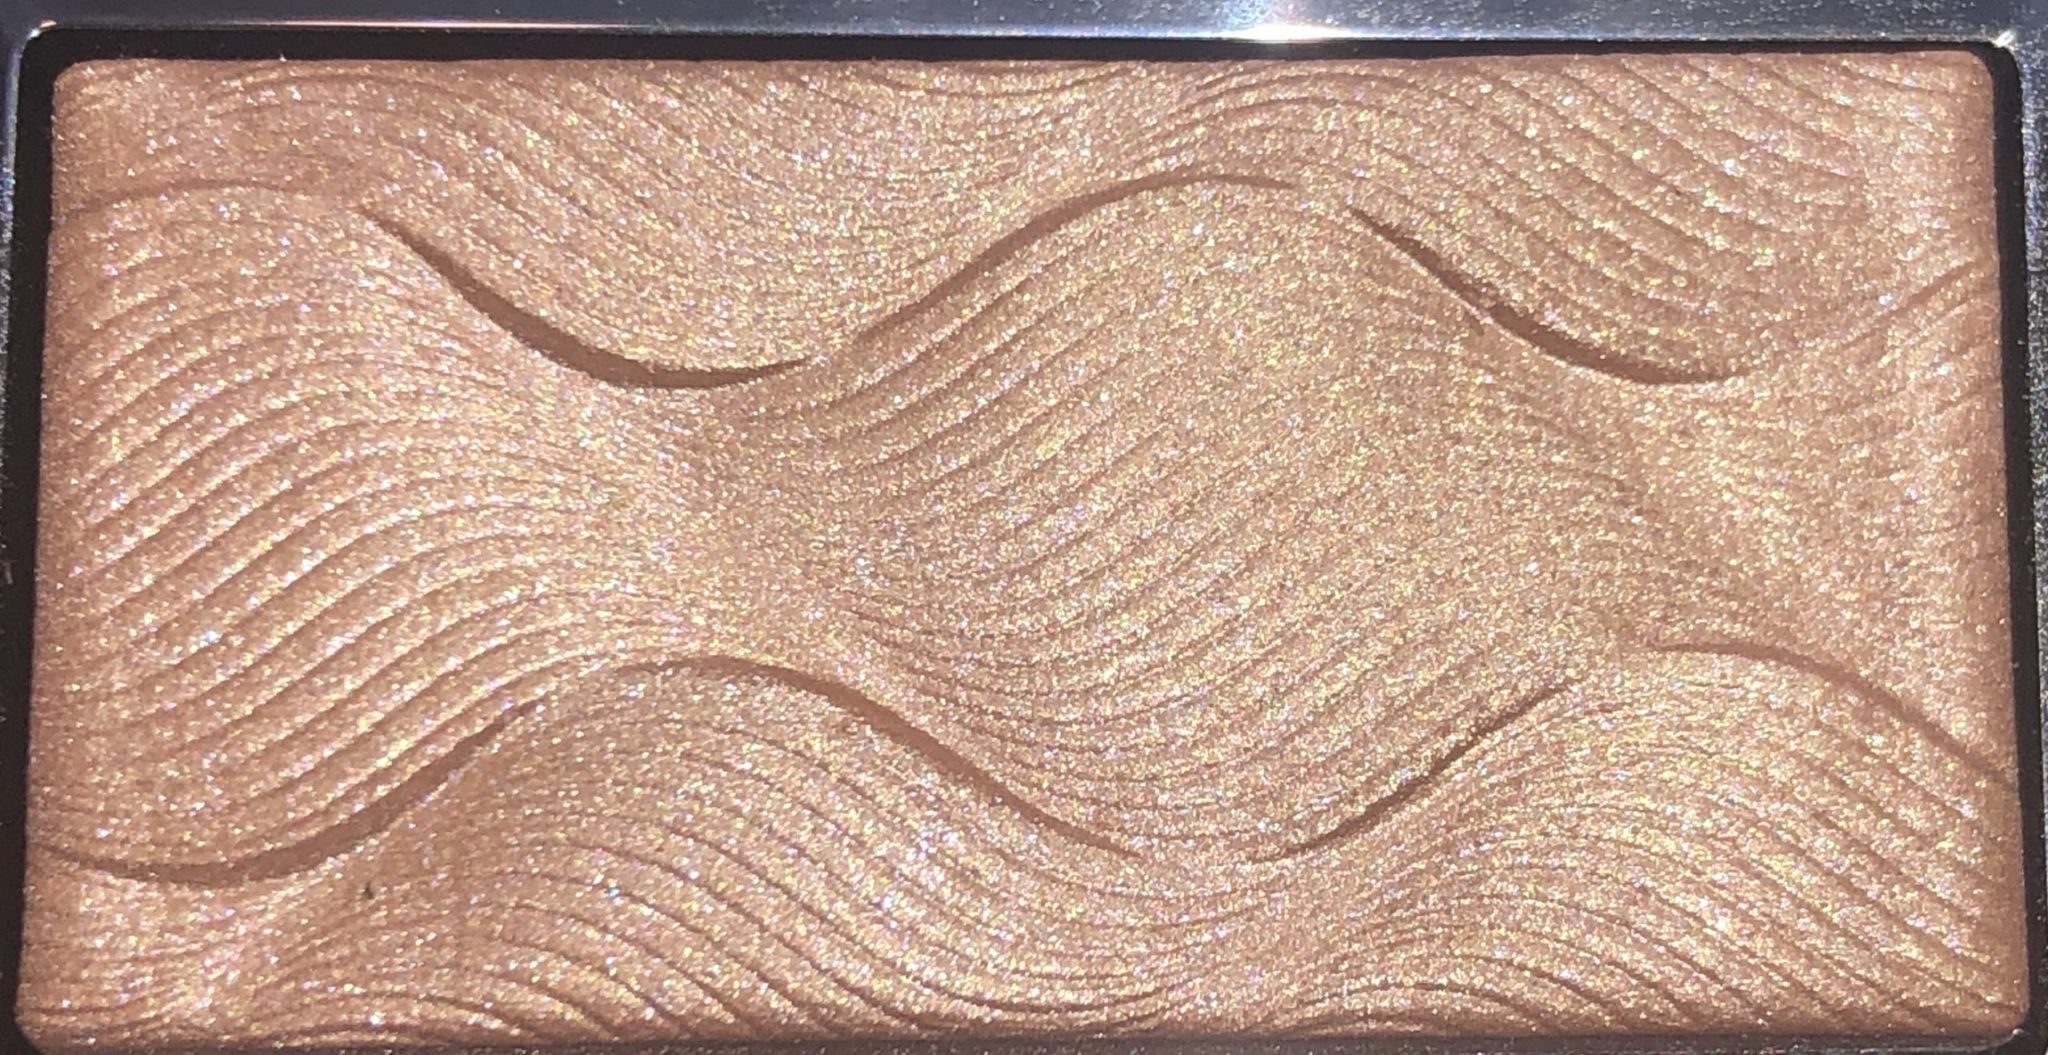 THE CORAL PALETTE'S HIGHLIGHTER IS A CHAMPAGNE SHADE WITH A SUBTLE SHIMMER